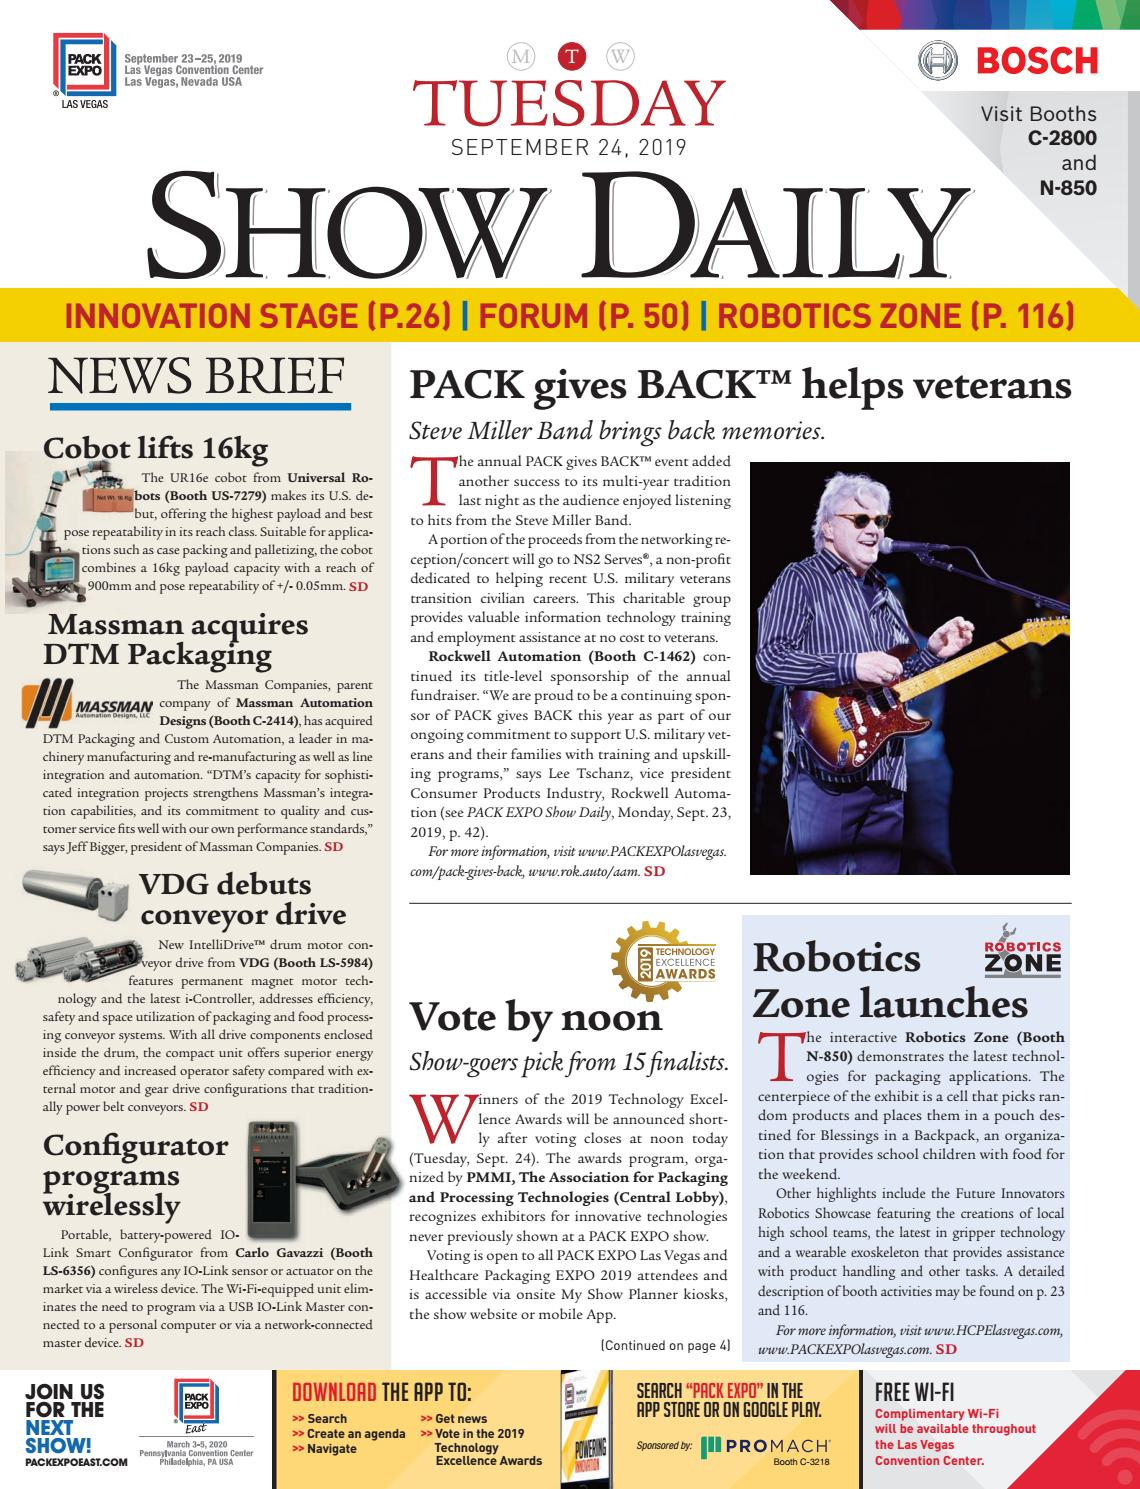 PACK EXPO Las Vegas / Healthcare Packaging EXPO Show Daily